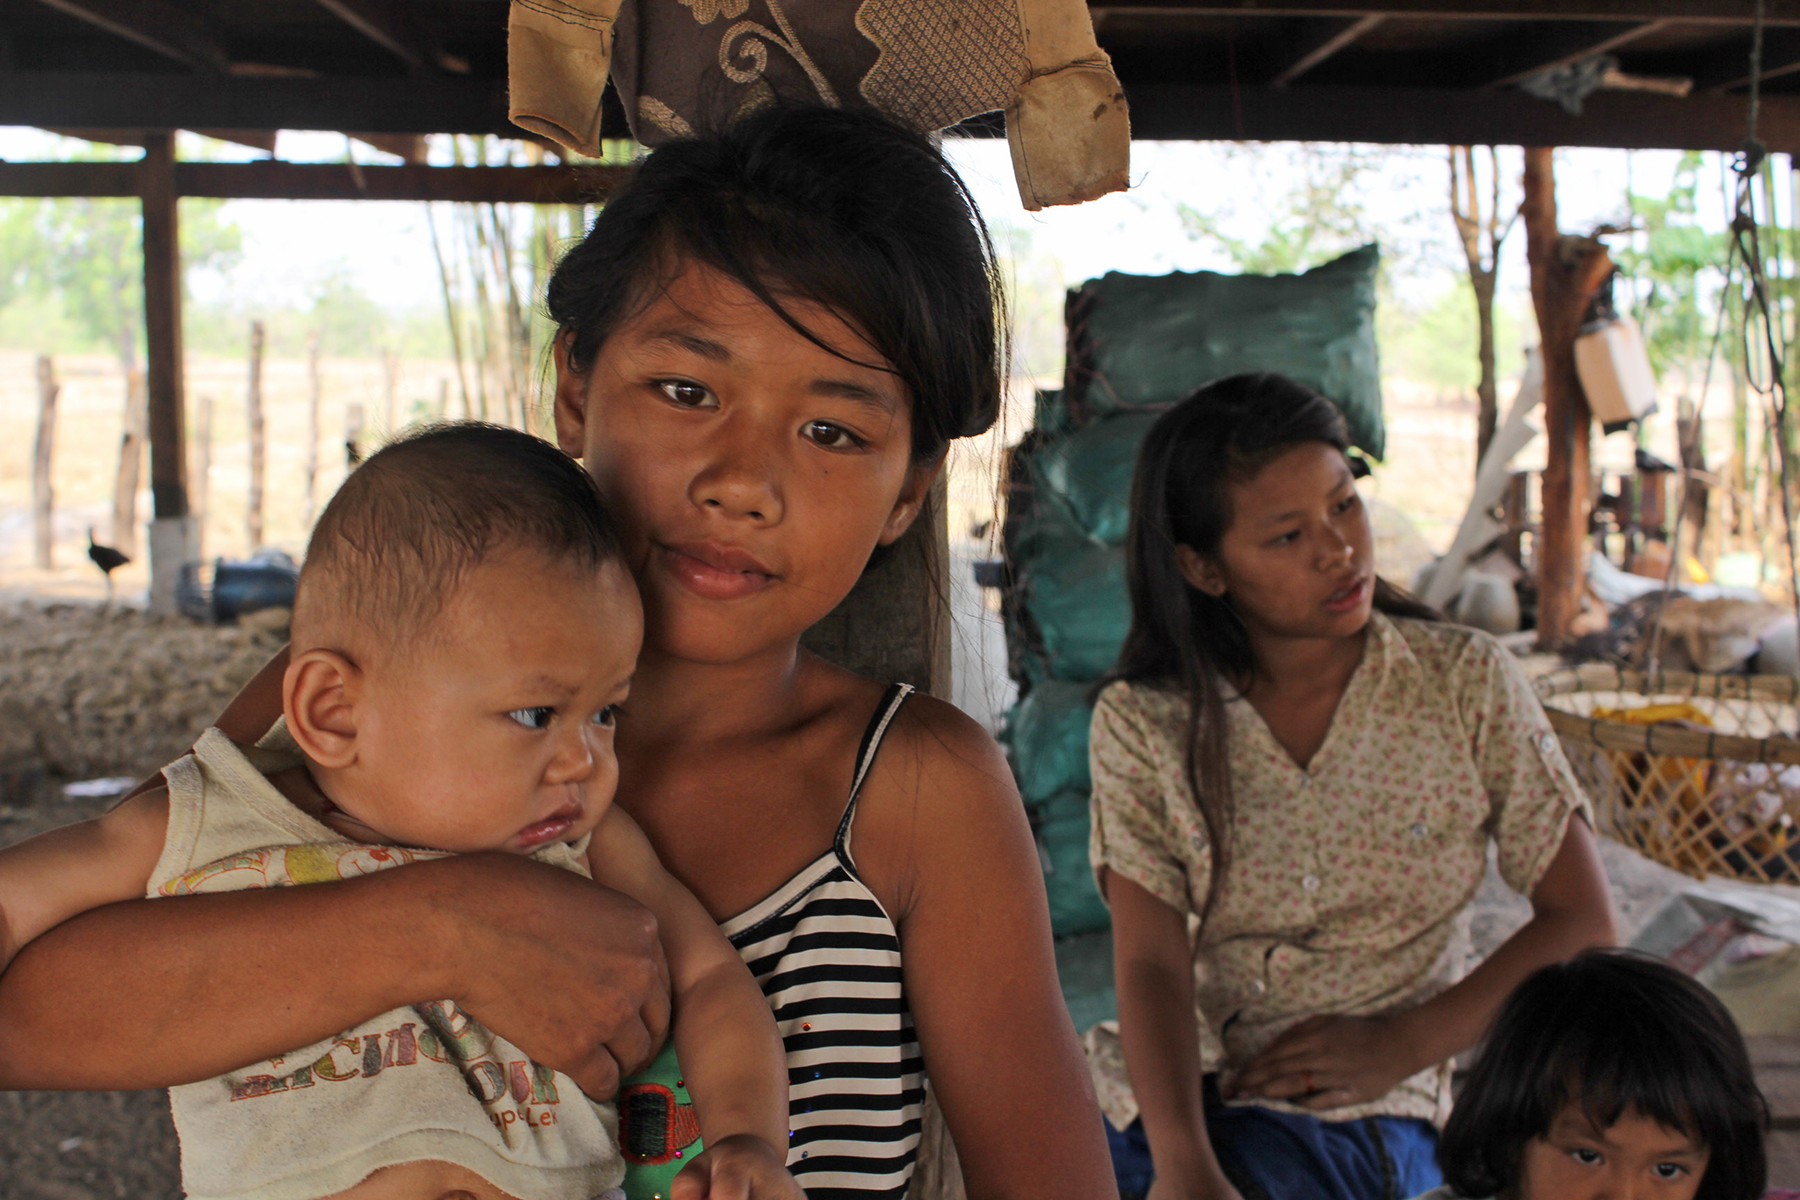 Tong and Duangmany, two young girls now safe from traffickers